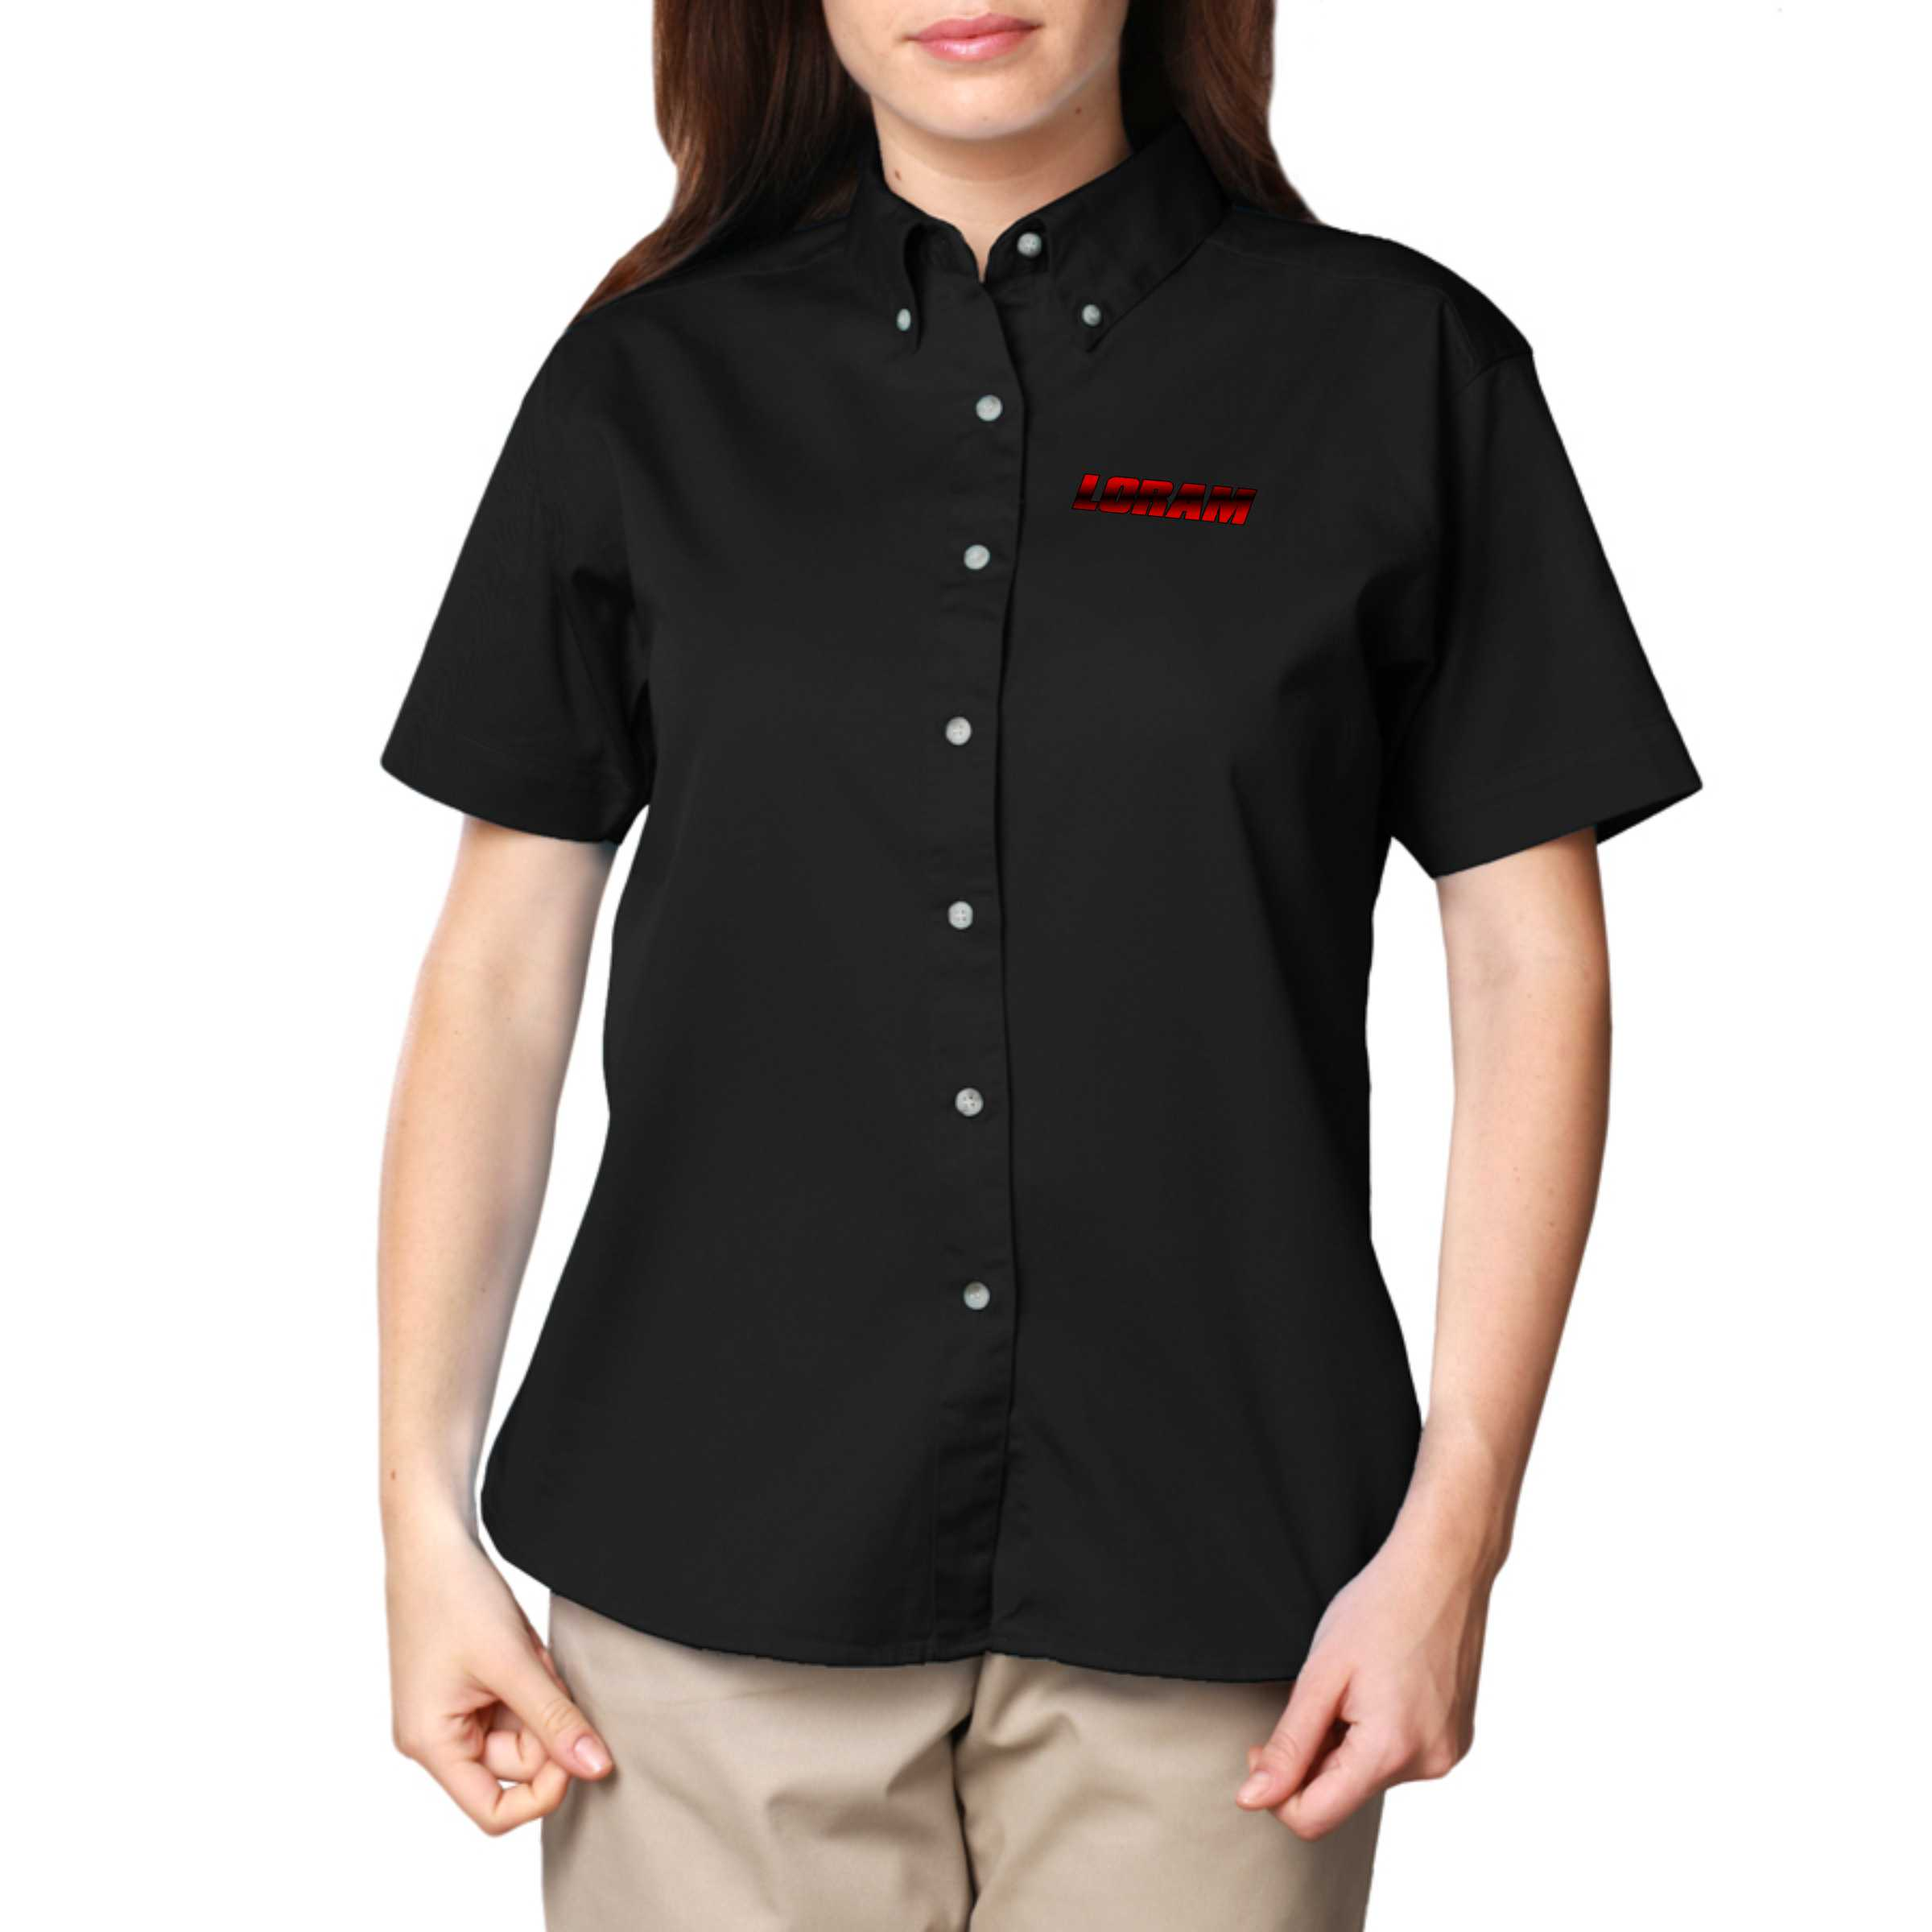 Design custom work shirts from top brands like Dickies and Red Kap that can stand up to the toughest jobs. Add your logo or use free design templates to create custom embroidered mechanic shirts, long sleeve flannel shirts, durable denim shirts, button-up shop shirts, stain resistant restaurant uniform shirts, safety shirts, and so much more.